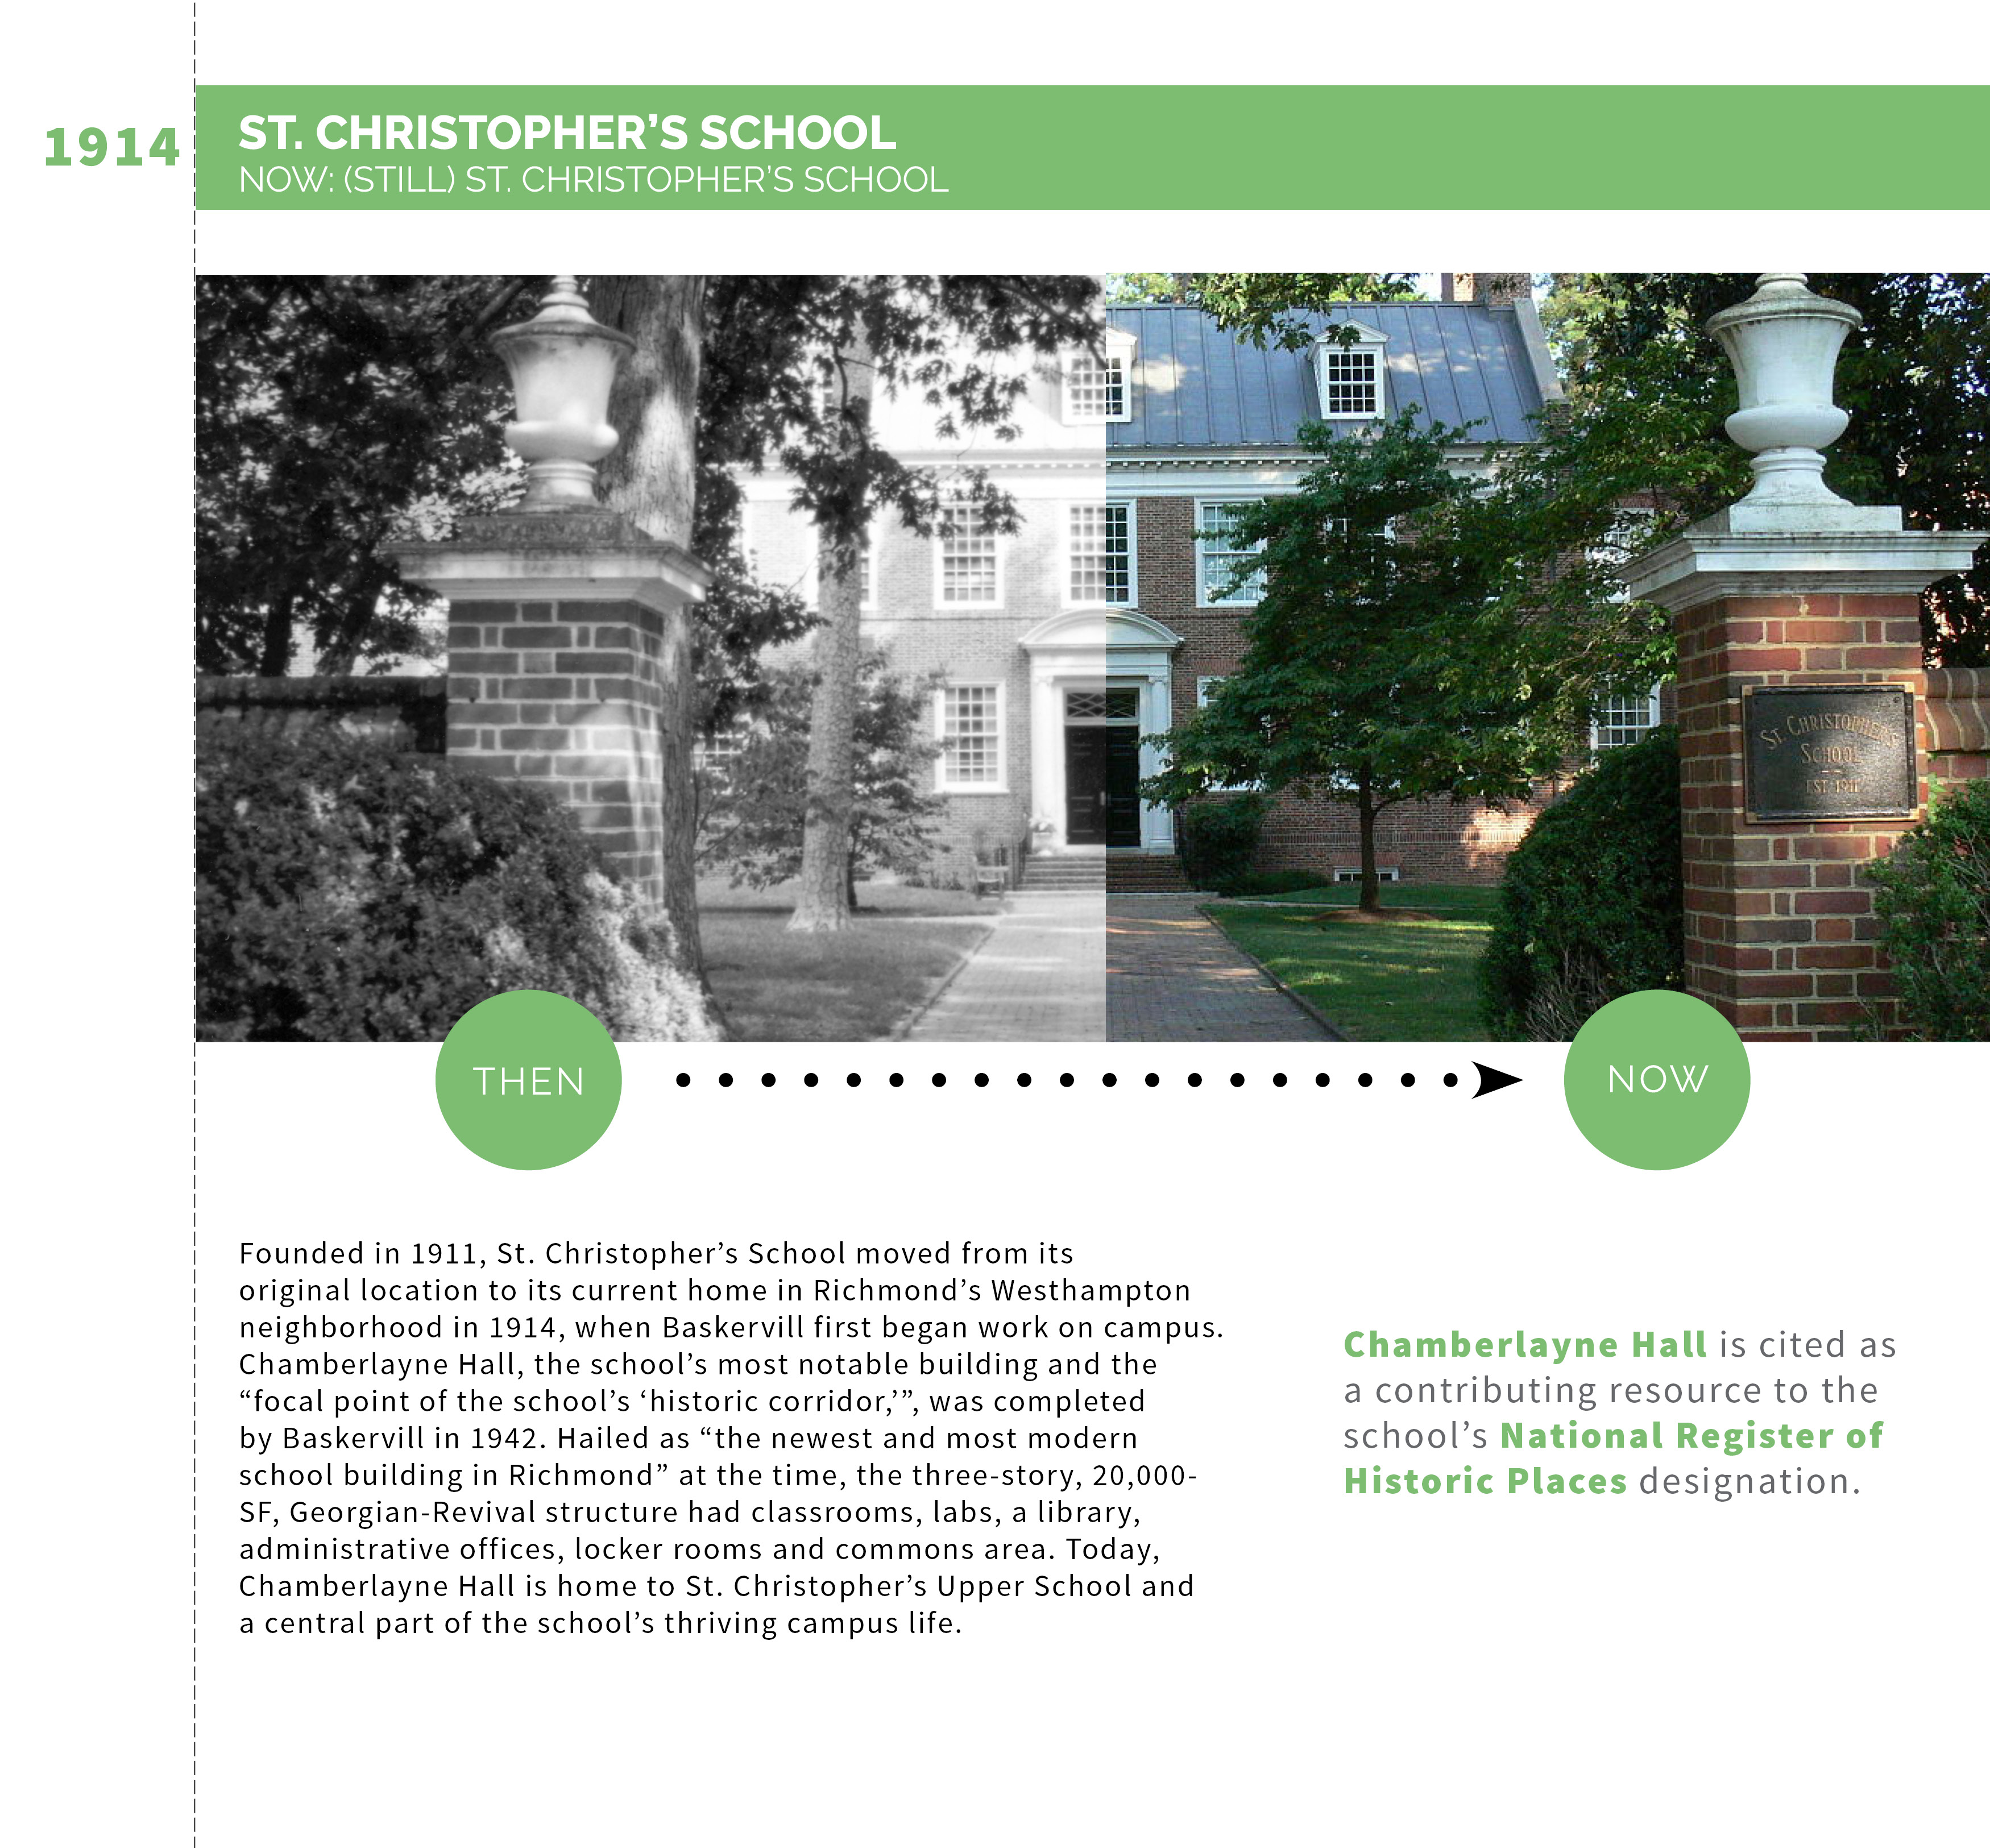 "Founded in 1911, St. Christopher's School moved from its original location to its current home in Richmond's Westhampton neighborhood in 1914, when Baskervill first began work on campus. Chamberlayne Hall, the school's most notable building and the ""focal point of the school's 'historic corridor,'"", was completed by Baskervill in 1942. Hailed as ""the newest and most modern school building in Richmond"" at the time, the three-story, 20,000-SF, Georgian-Revival structure had classrooms, labs, a library, administrative offices, locker rooms and commons area. Today, Chamberlayne Hall is home to St. Christopher's Upper School and a central part of the school's thriving campus life.Chamberlayne Hall is cited as a contributing resource to the school's National Register of Historic Places designation."